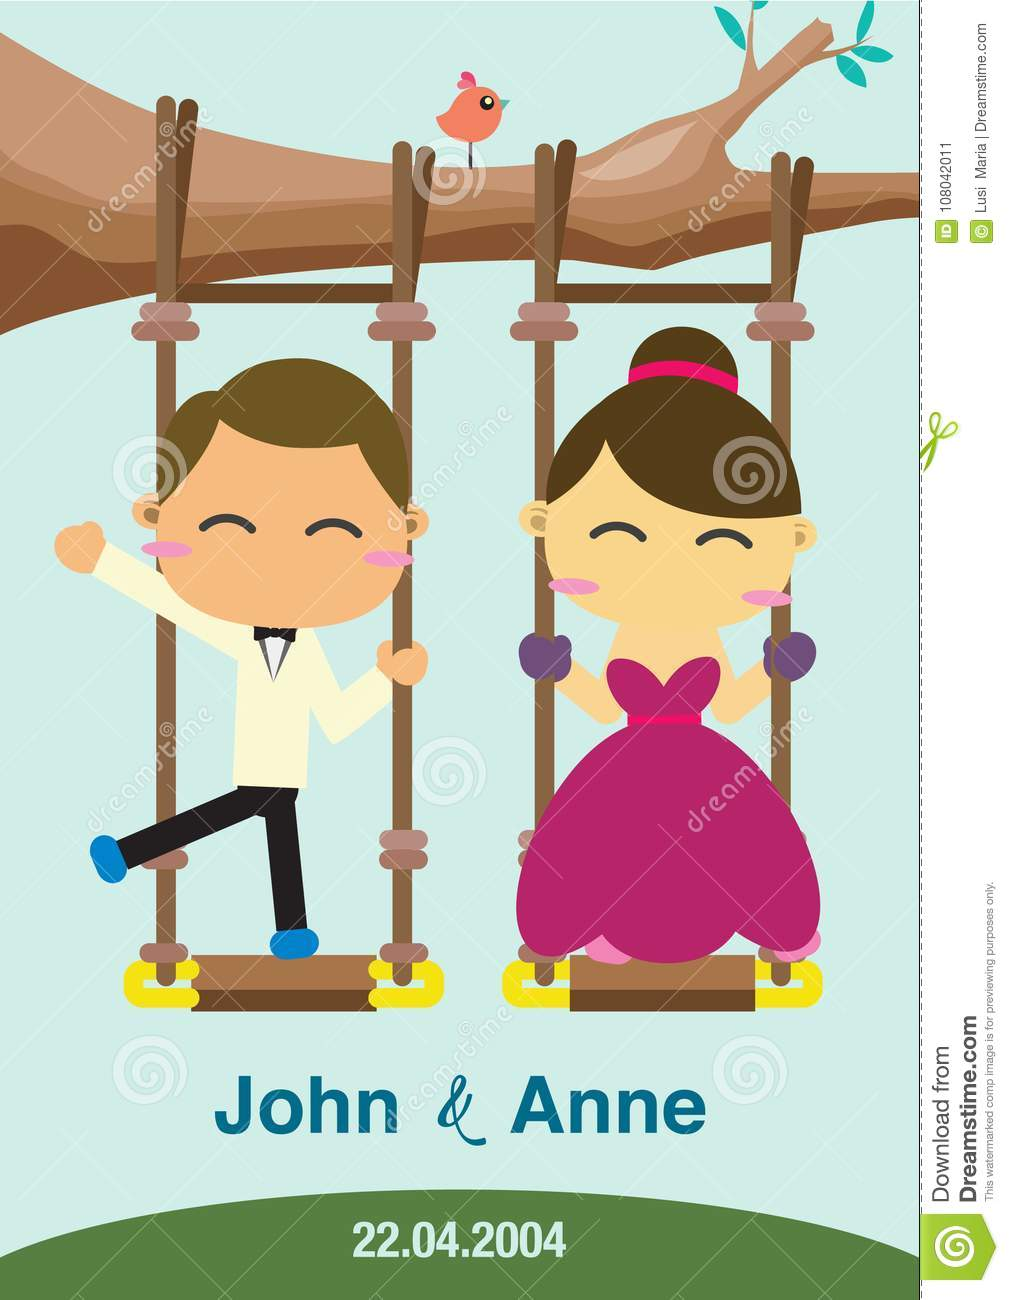 The couple is playing a swing.